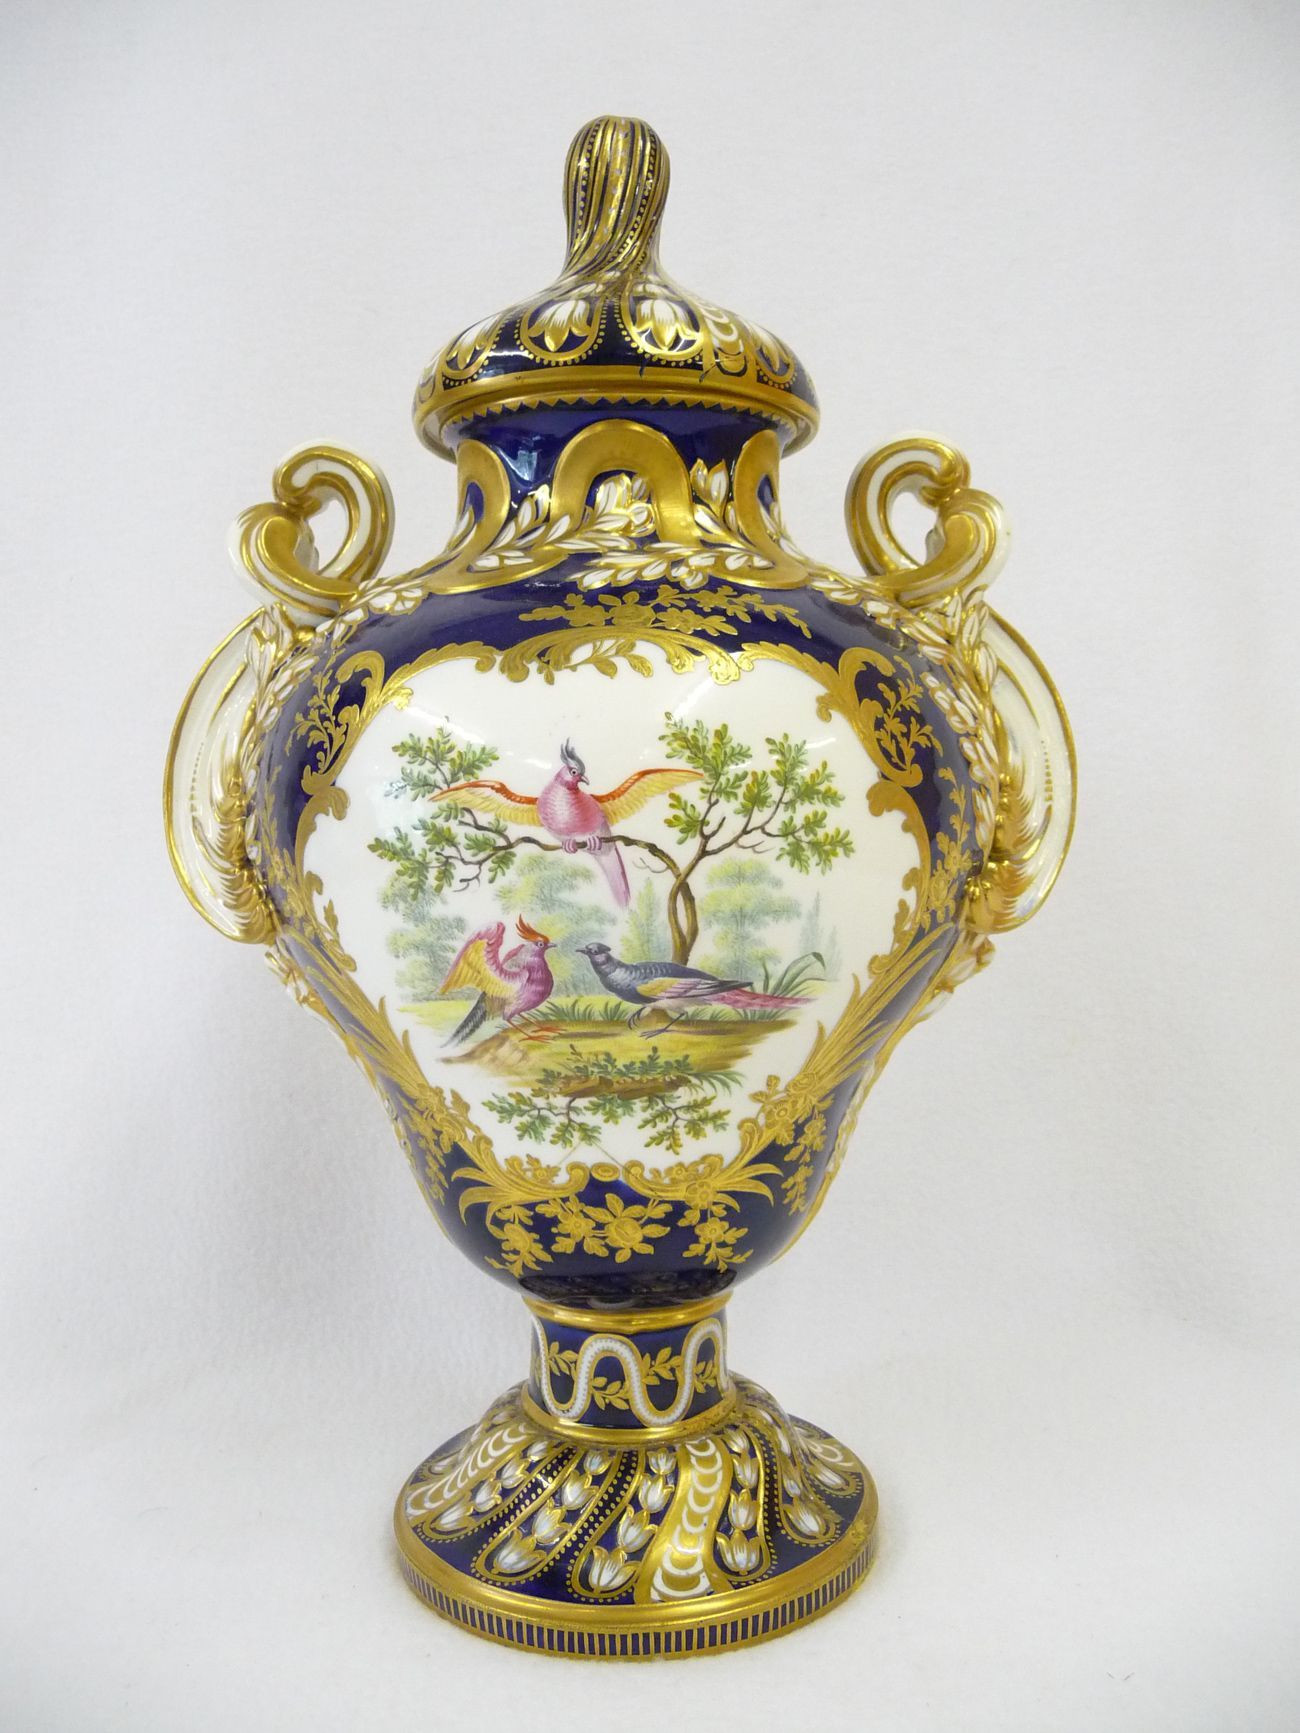 brass bud vase india of 49 antique brass vase the weekly world inside probably coalport porcelain pany shropshire england rococo